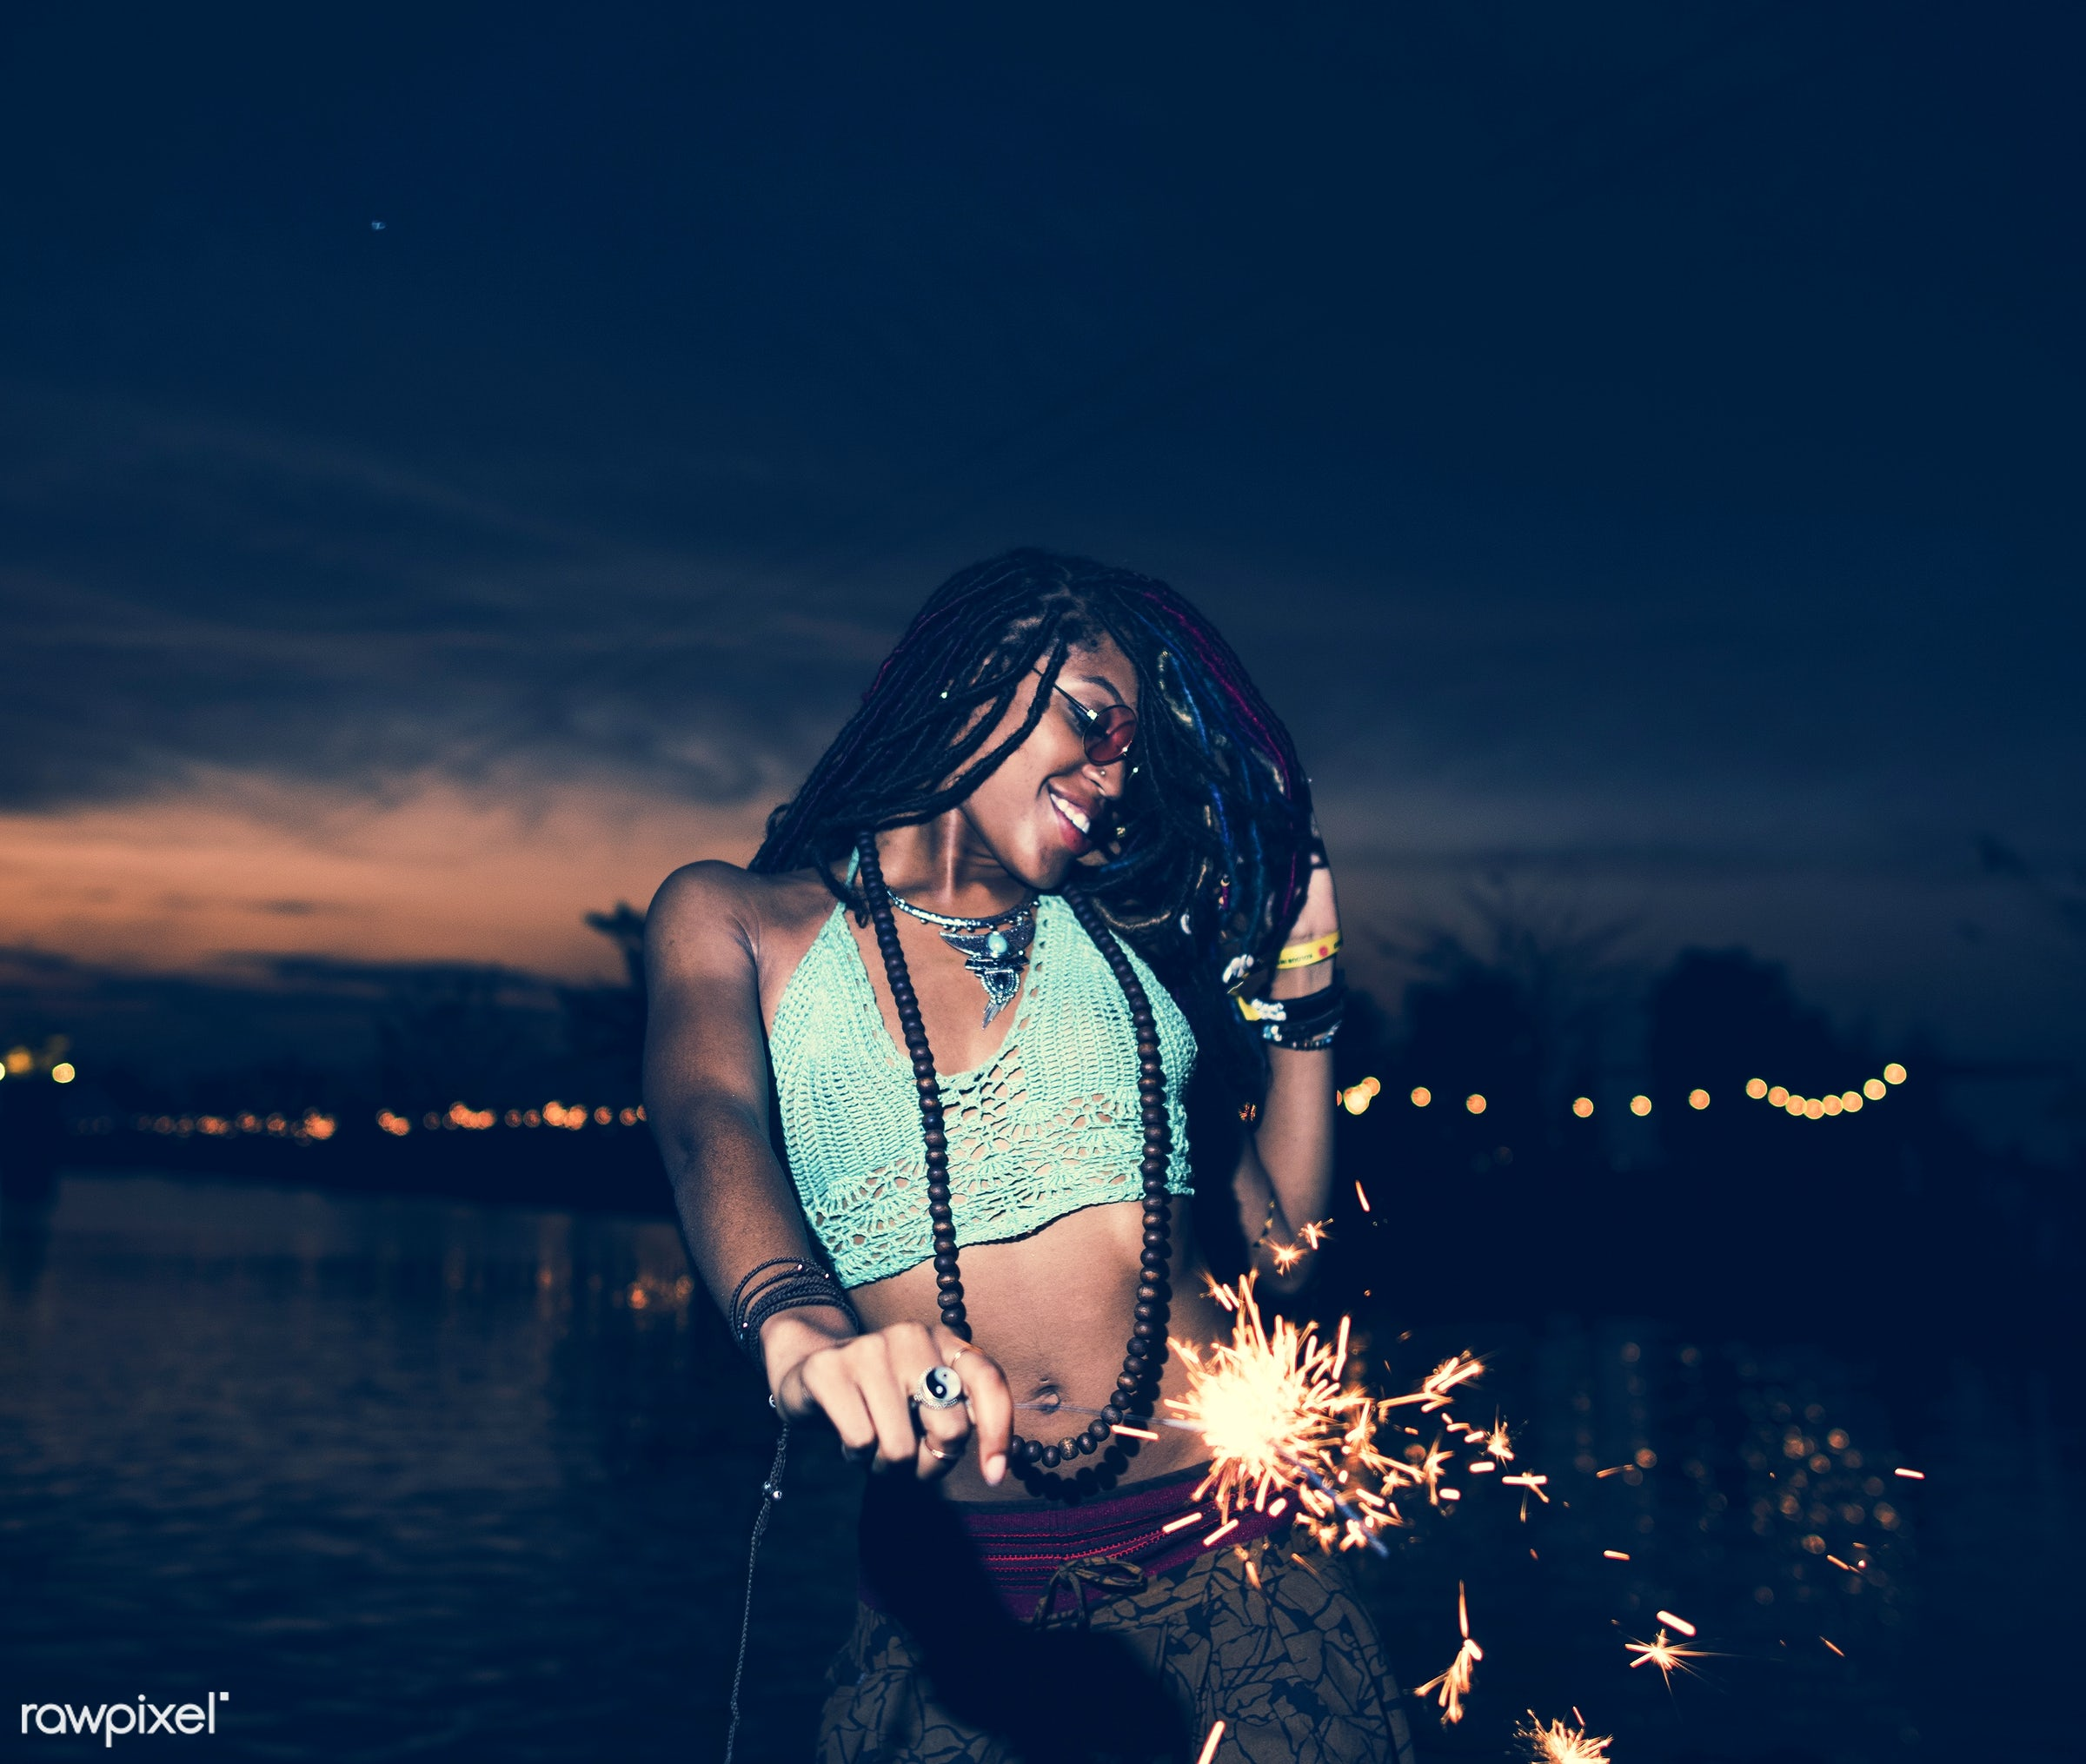 concert, person, relax, carefree, party, people, together, sparkler, friends, socializing, hands, woman, event, lifestyle,...